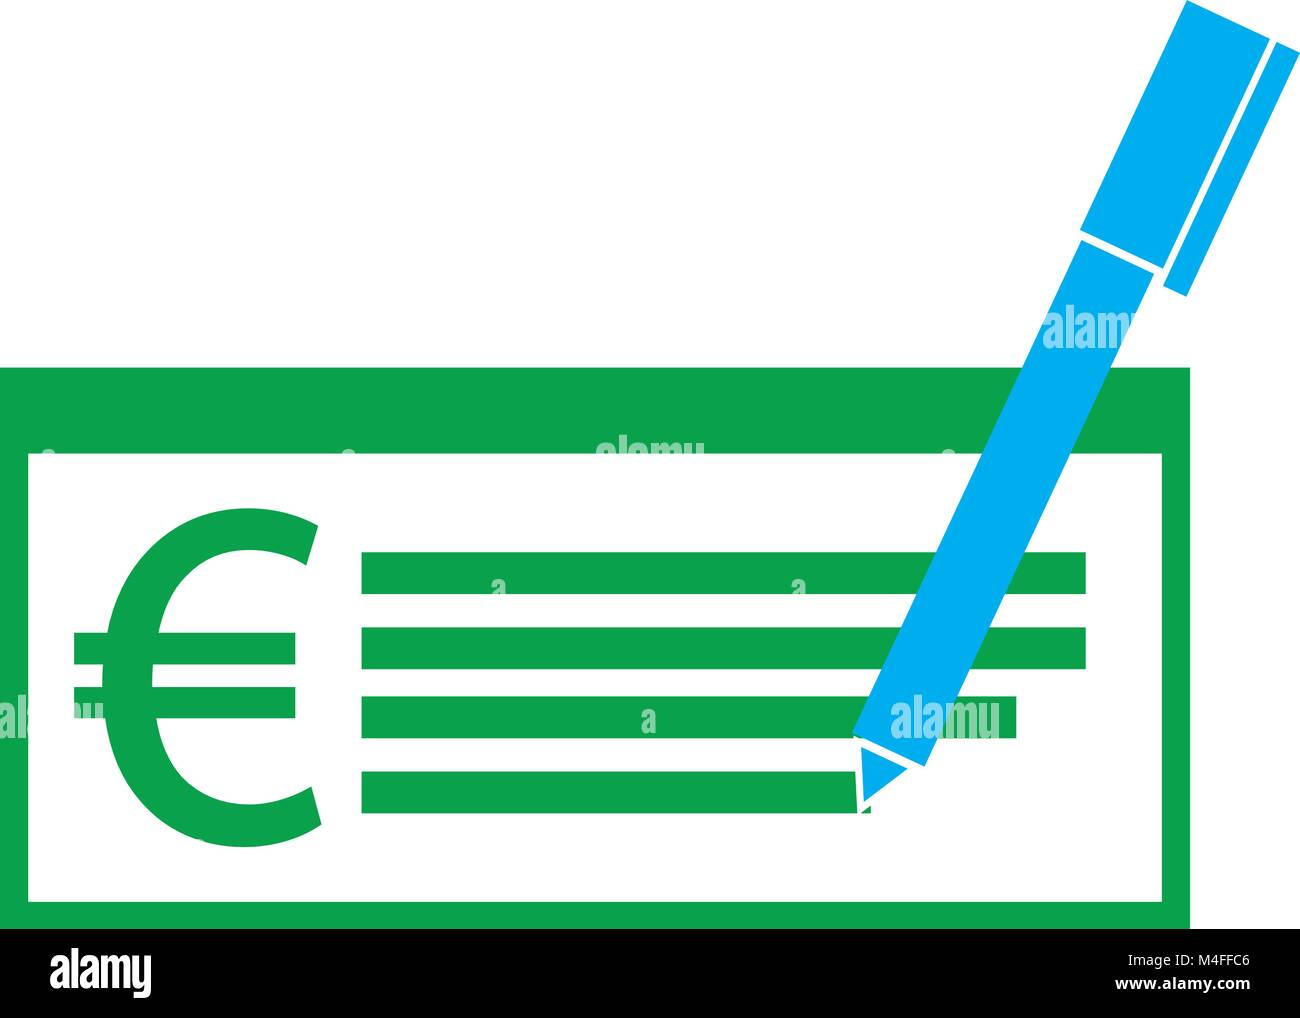 Euro currency icon or logo vector on a paycheck or cheque symbol euro currency icon or logo vector on a paycheck or cheque symbol for european union bank banking or europe eurozone finances buycottarizona Choice Image